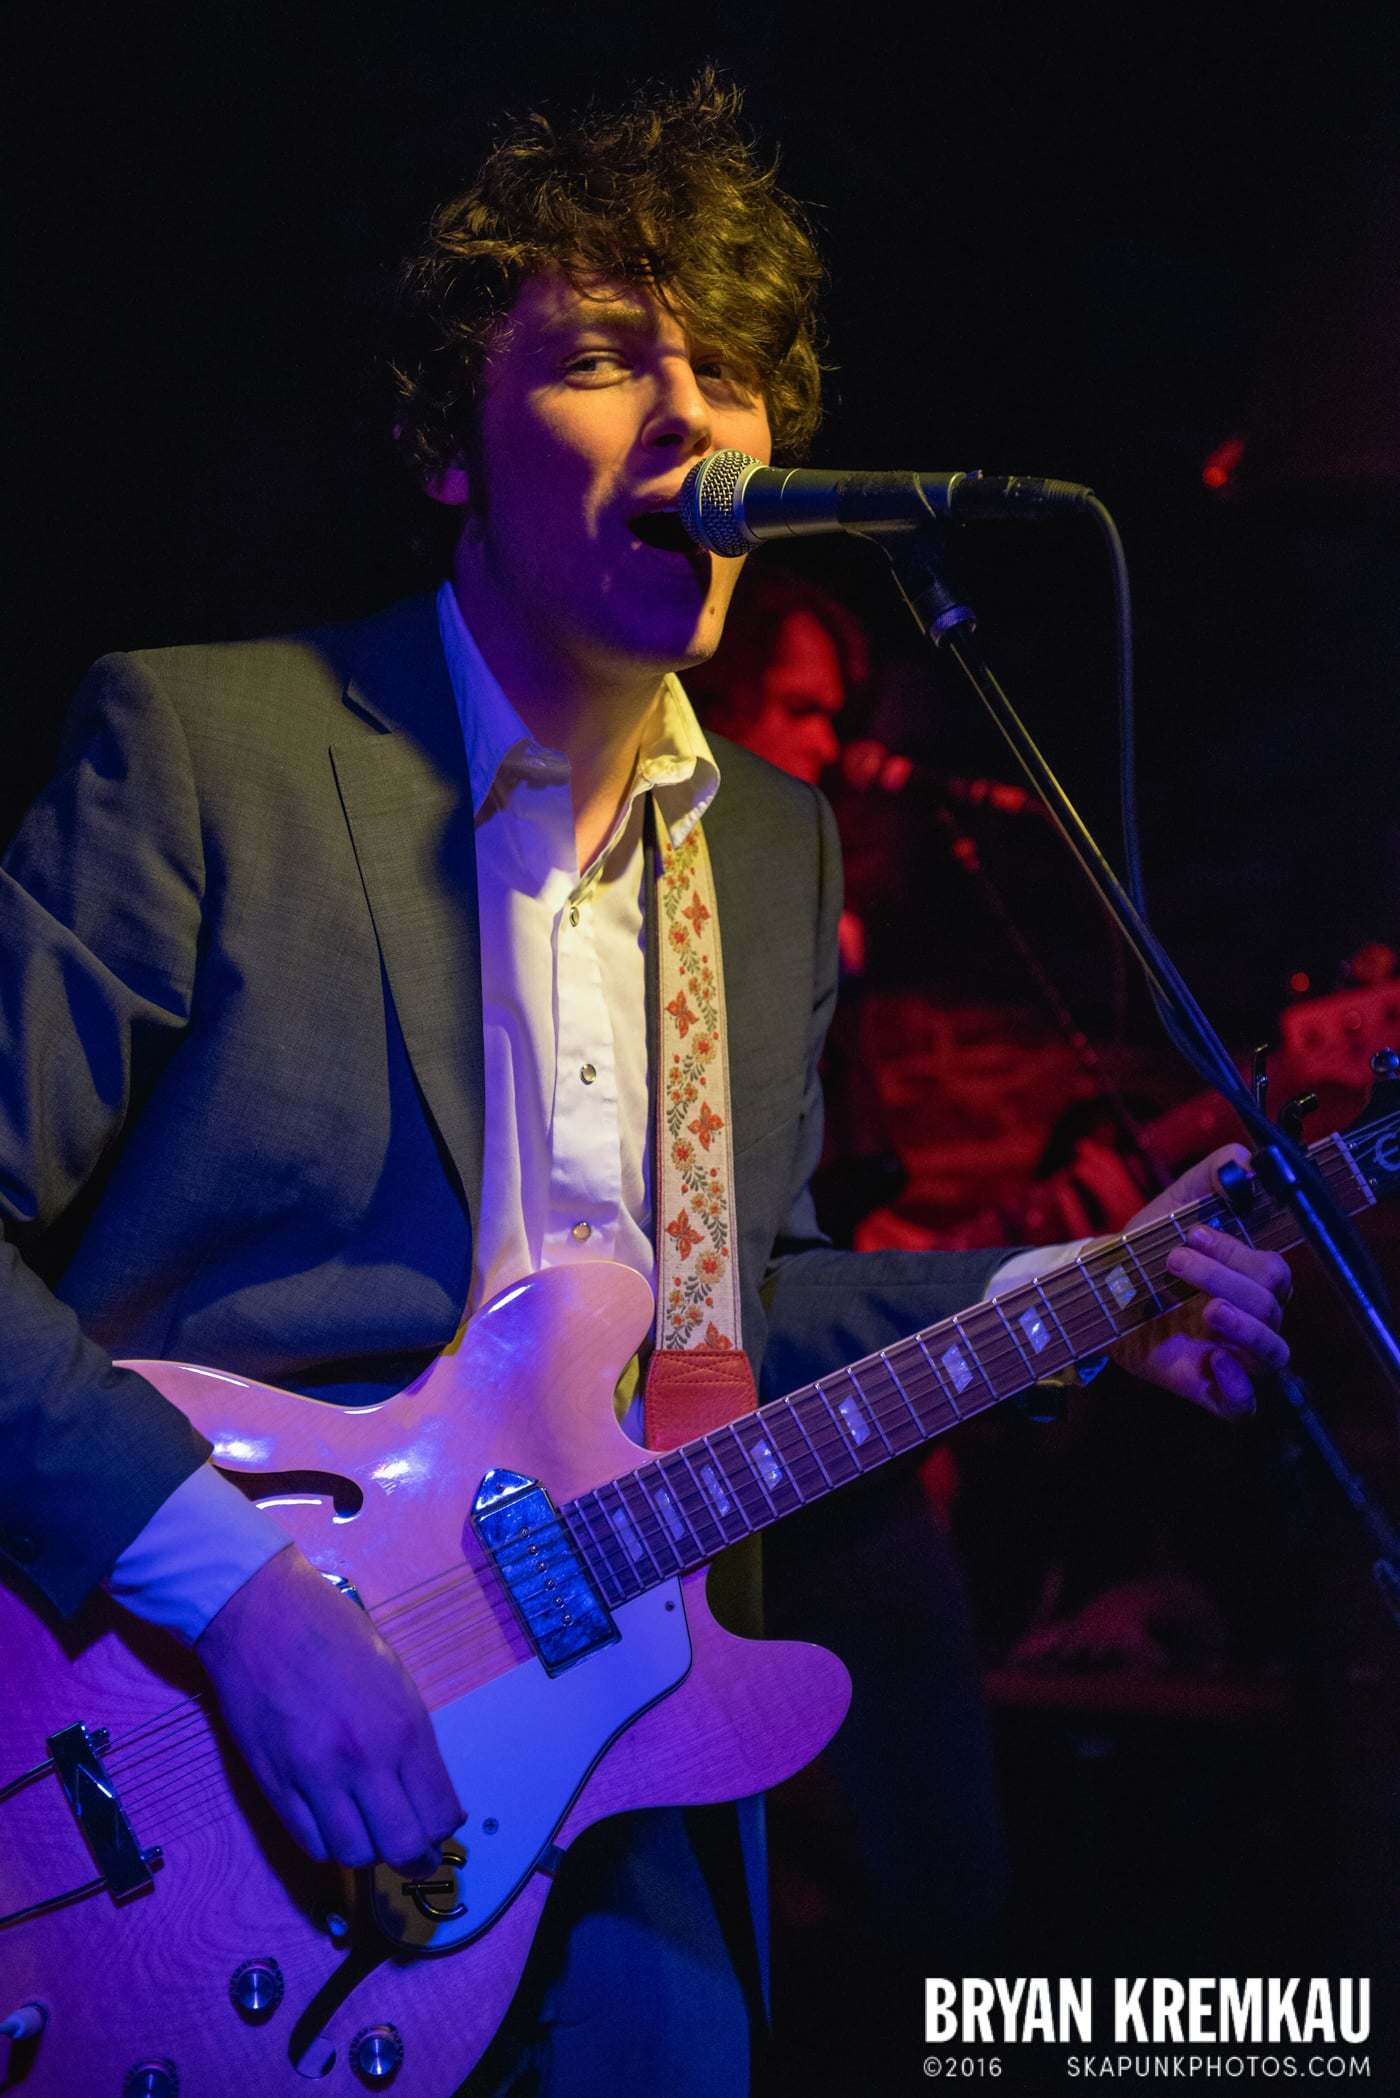 Trapper Schoepp & The Shades @ Bowery Electric, NYC - 11.20.14 (60)